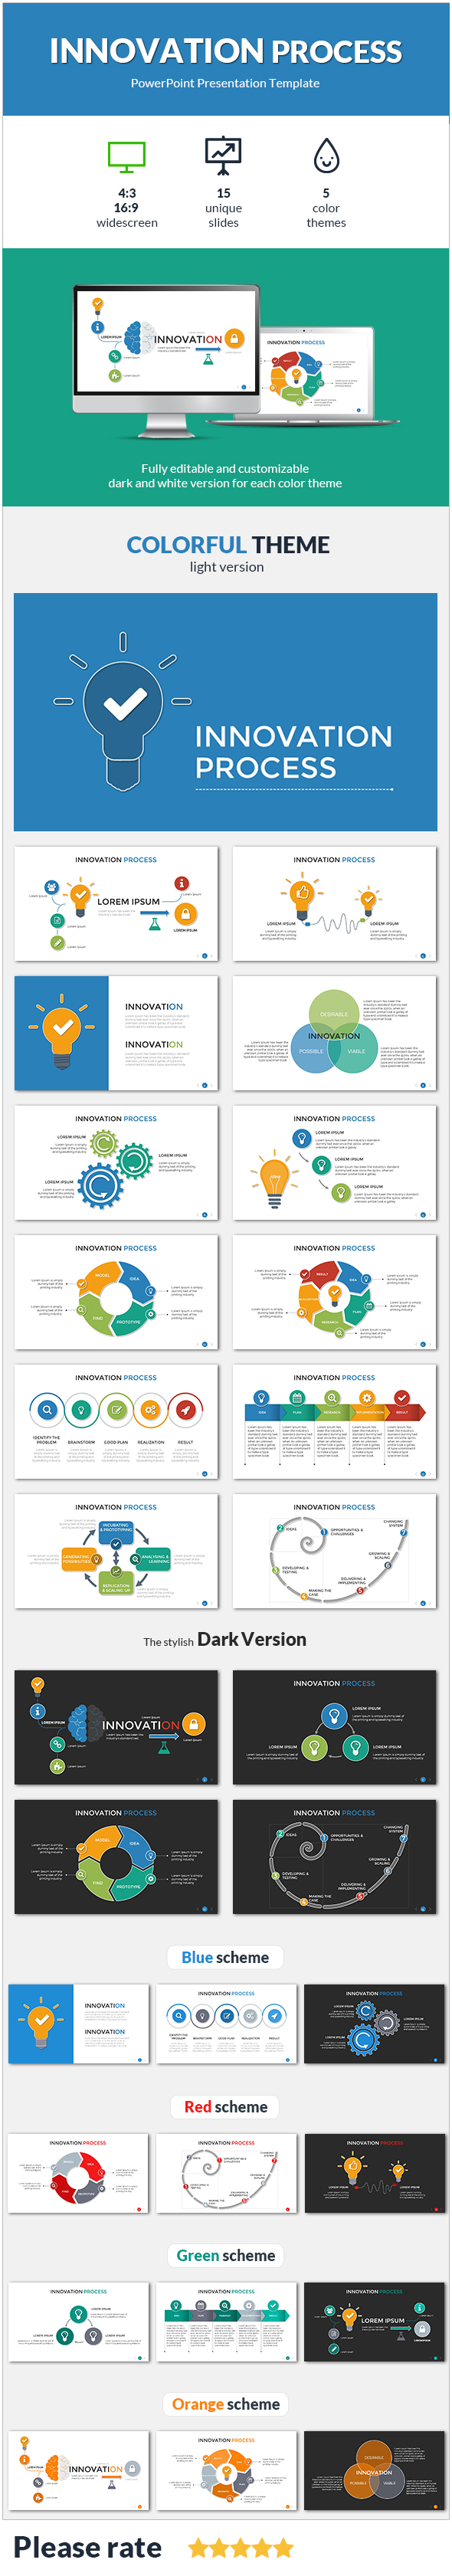 Innovation process presentation template by sananik graphicriver innovation process presentation template powerpoint templates presentation templates toneelgroepblik Choice Image